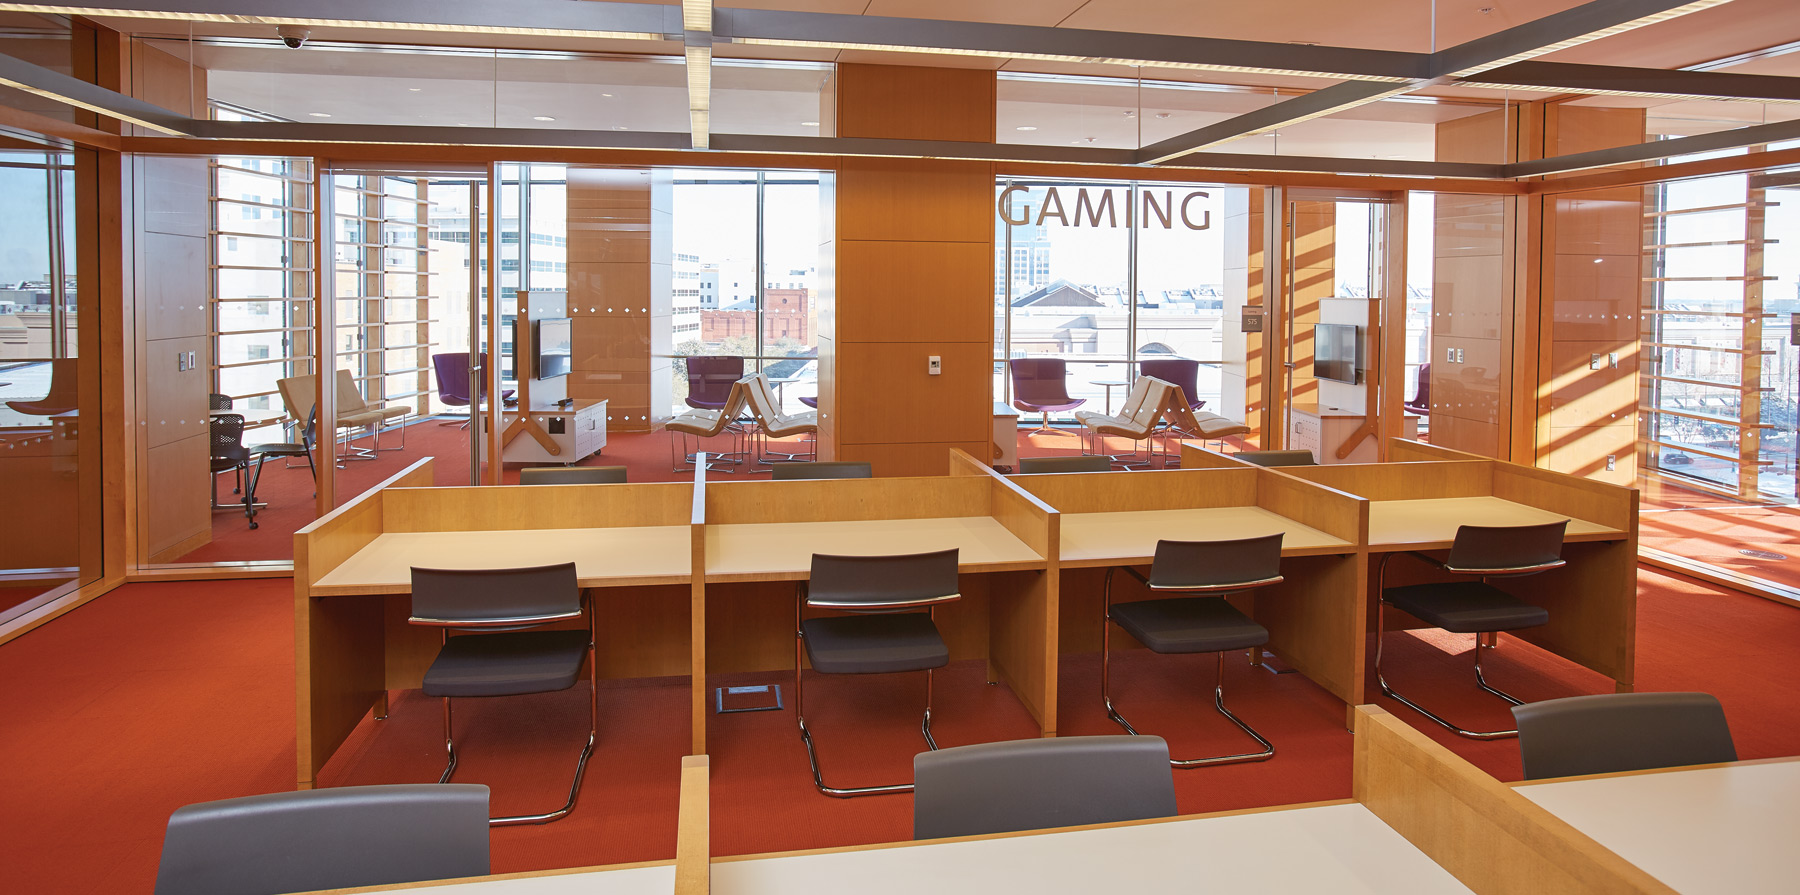 Slover Library - Gaming Area